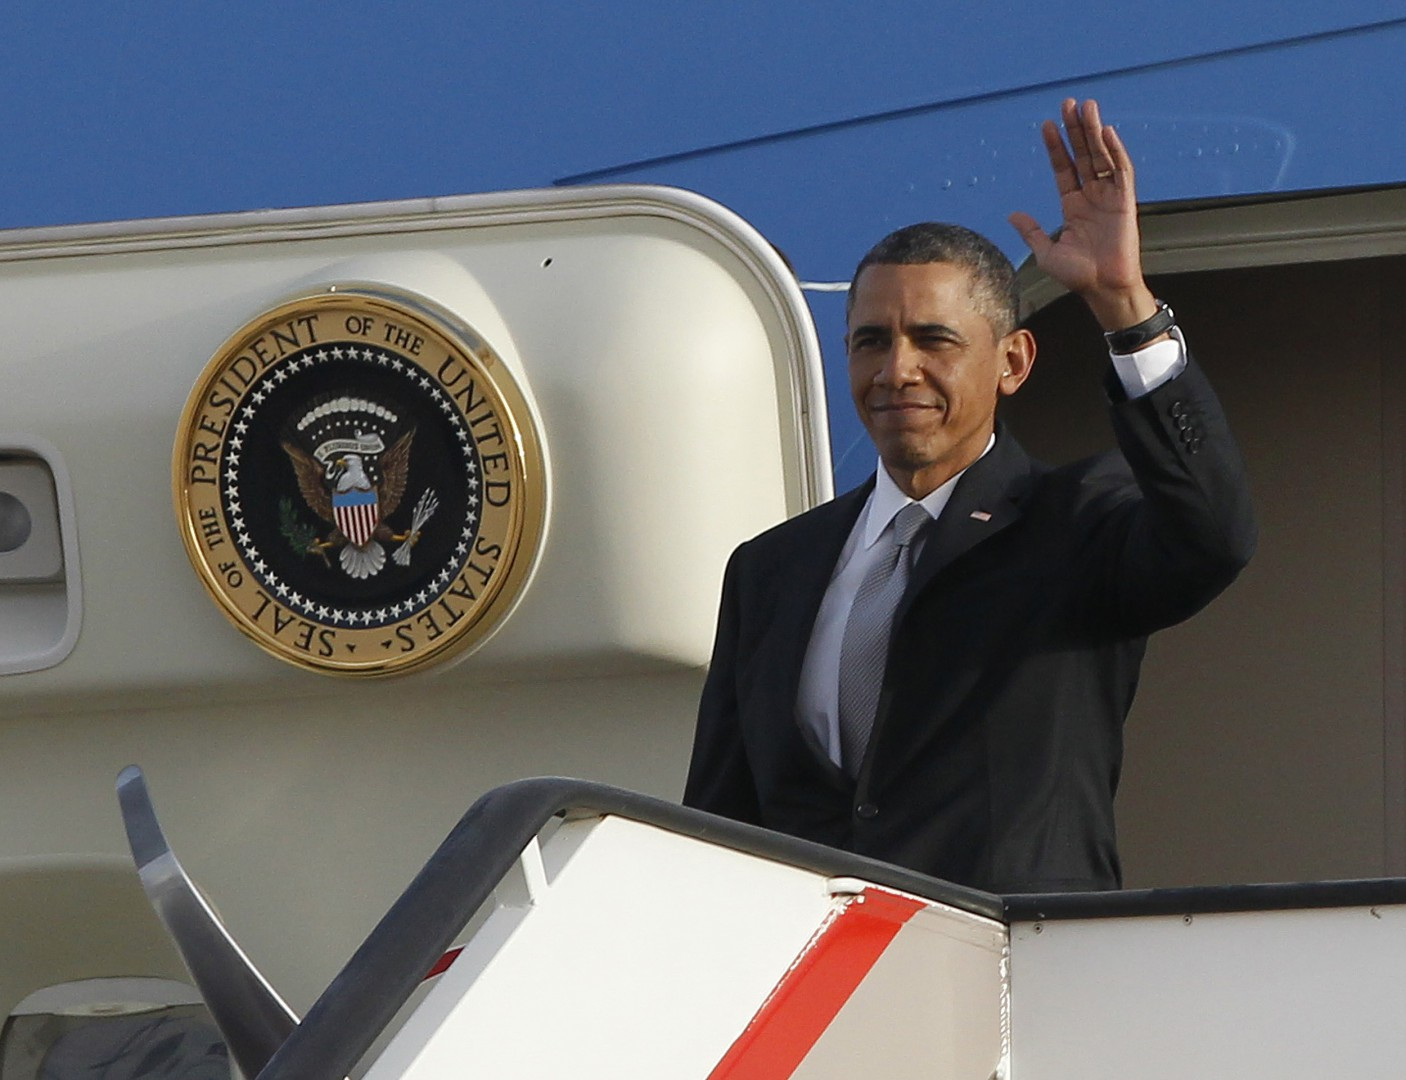 U.S. President Barack Obama arrives at Queen Alia International Airport in Amman March 22, 2013. REUTERS/Jason Reed   (JORDAN - Tags: POLITICS)